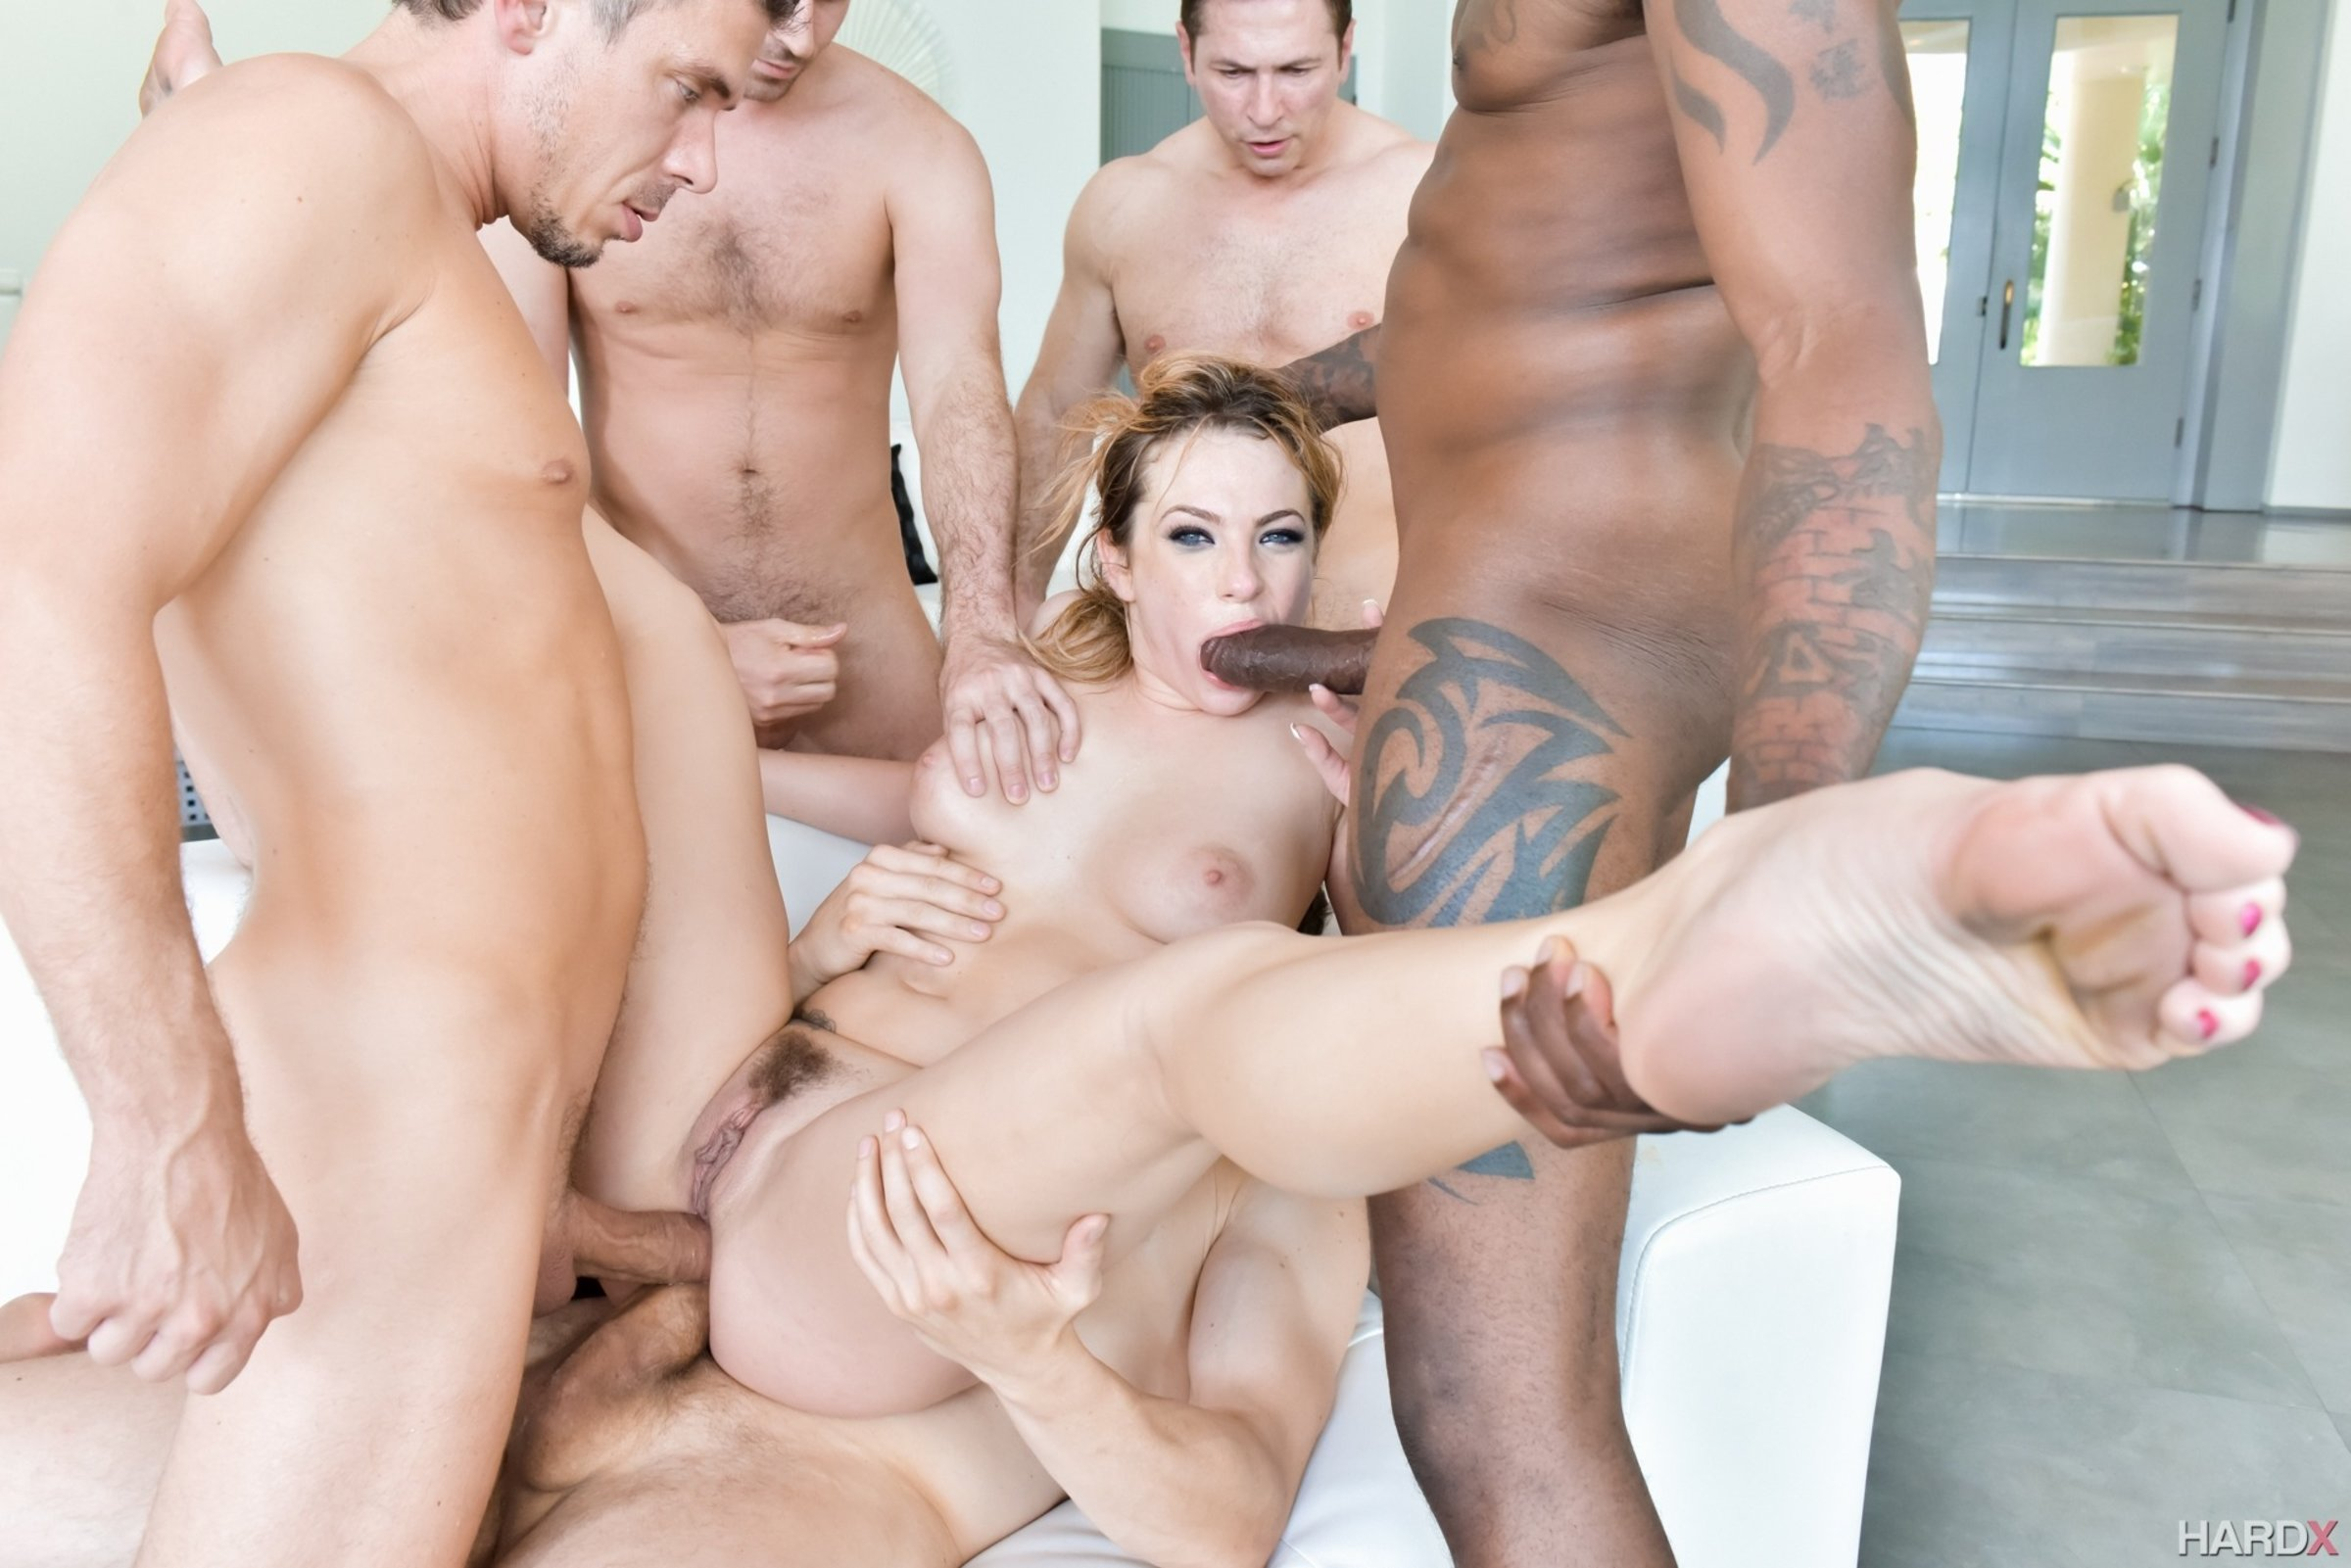 biggest-sex-free-hardcore-porn-stories-boys-nude